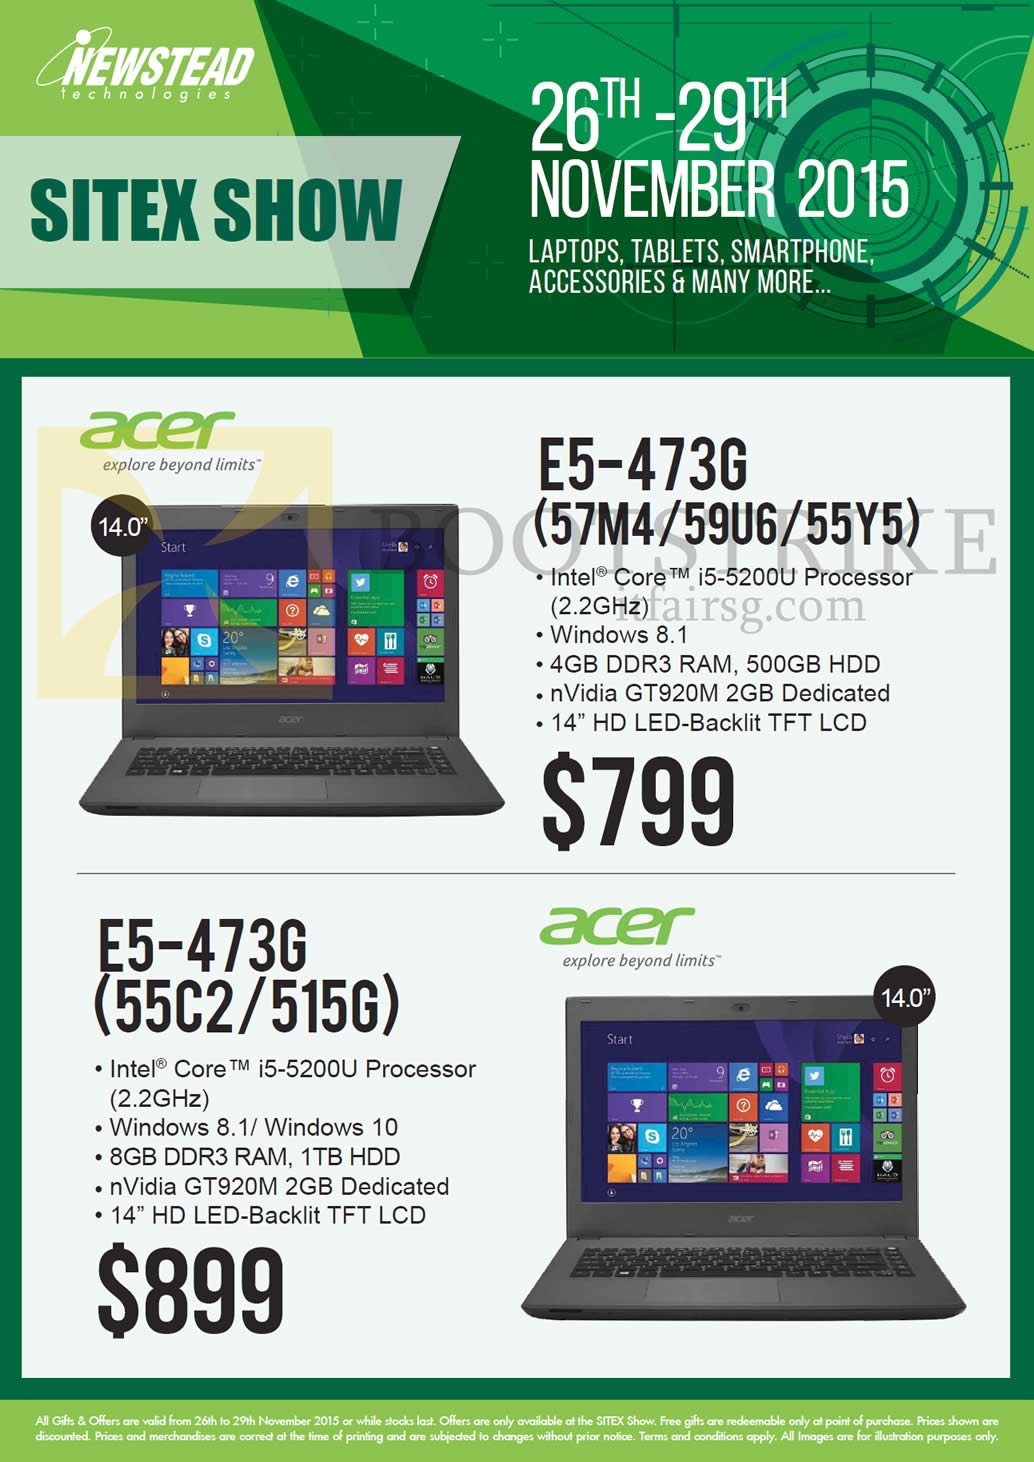 SITEX 2015 price list image brochure of Acer Newstead Notebooks, E5-473G (57M4 59U6 55Y5), E5-473G (55C2 515G)